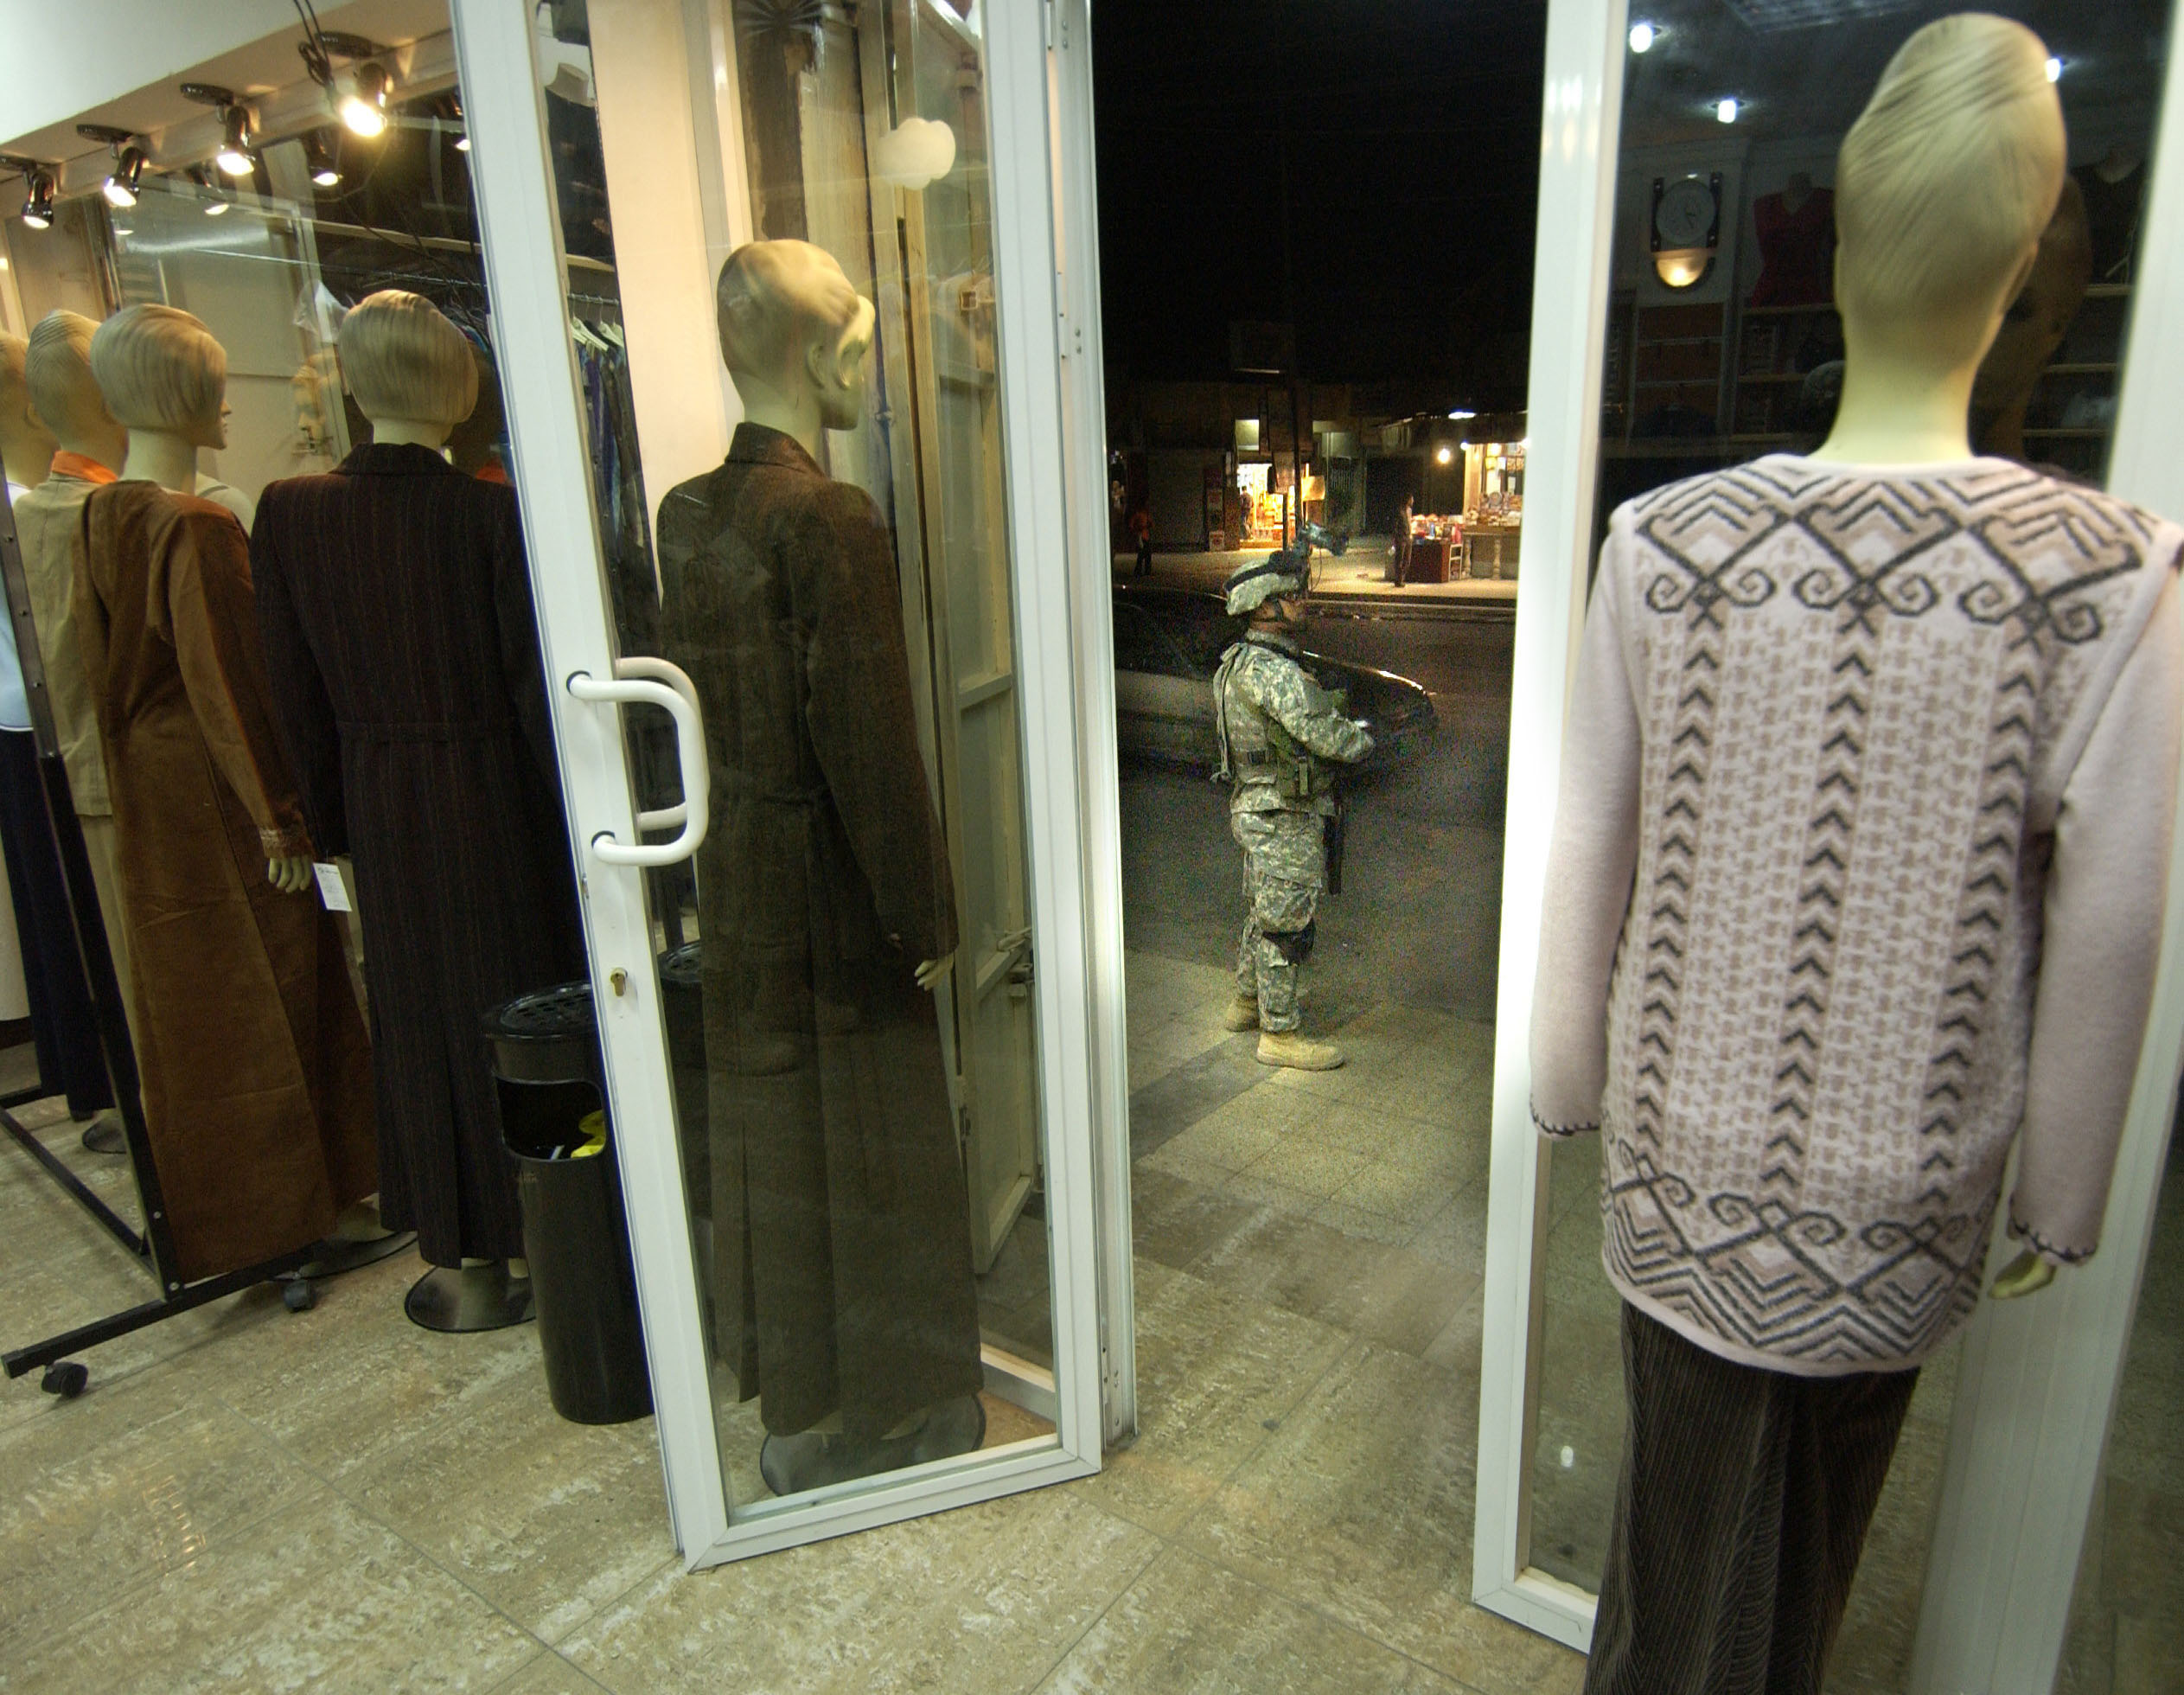 Xi clothing store. Women clothing stores